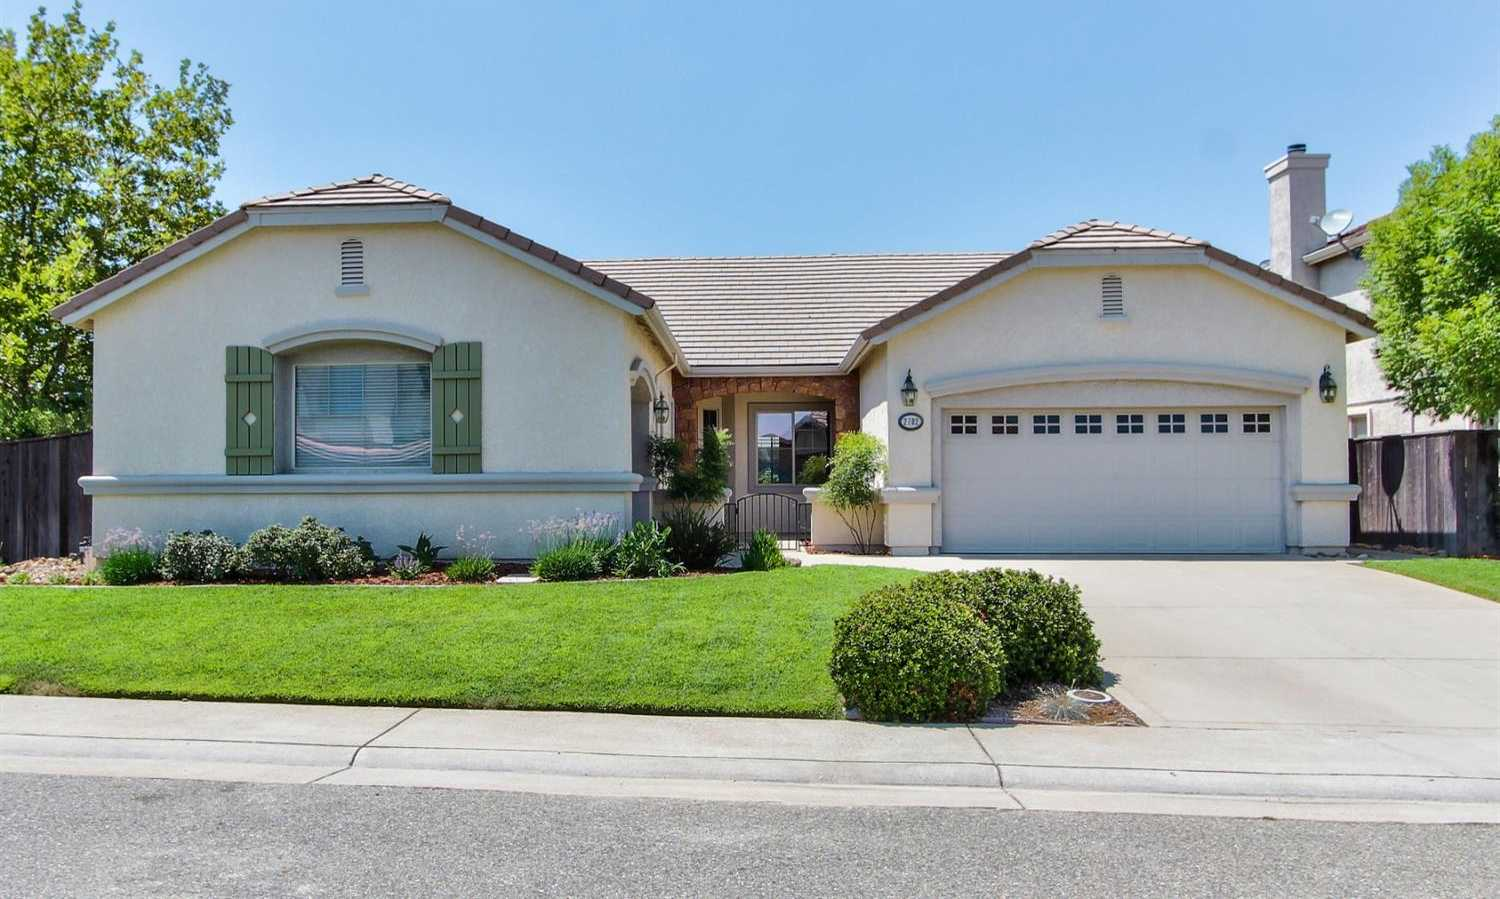 $535,000 - 4Br/2Ba -  for Sale in Lincoln